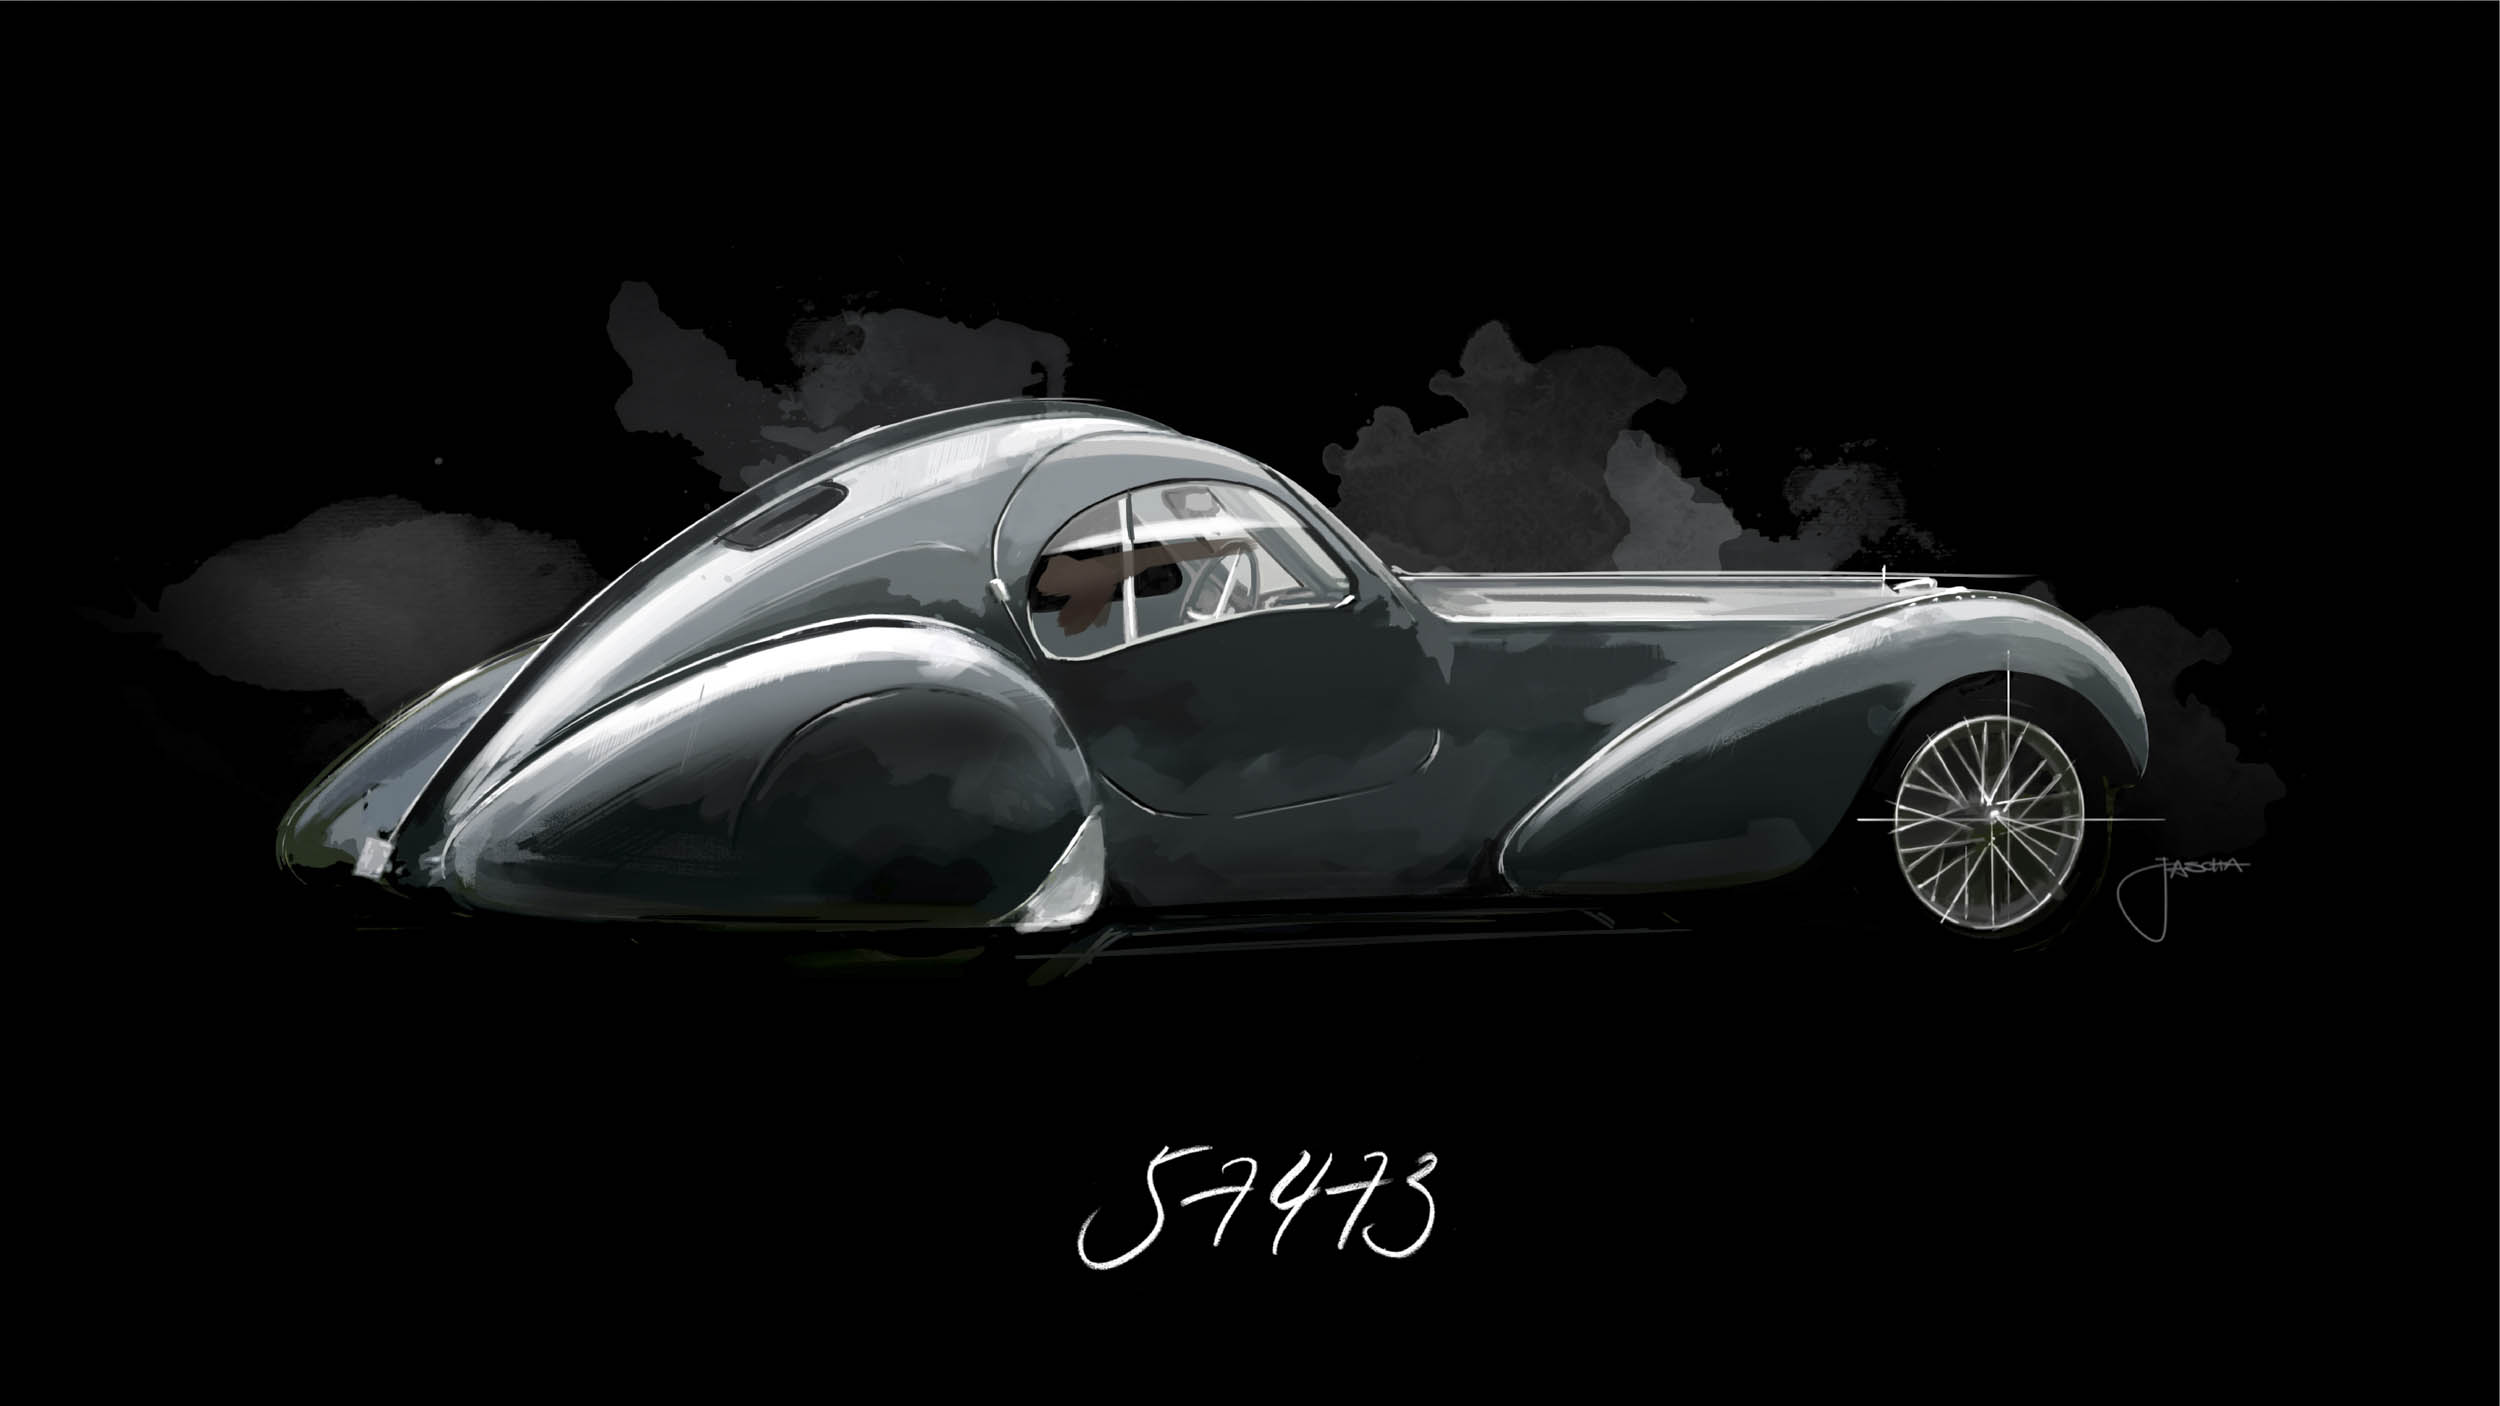 Bugatti Atlantic Chassis 57473, The Holzschuch car